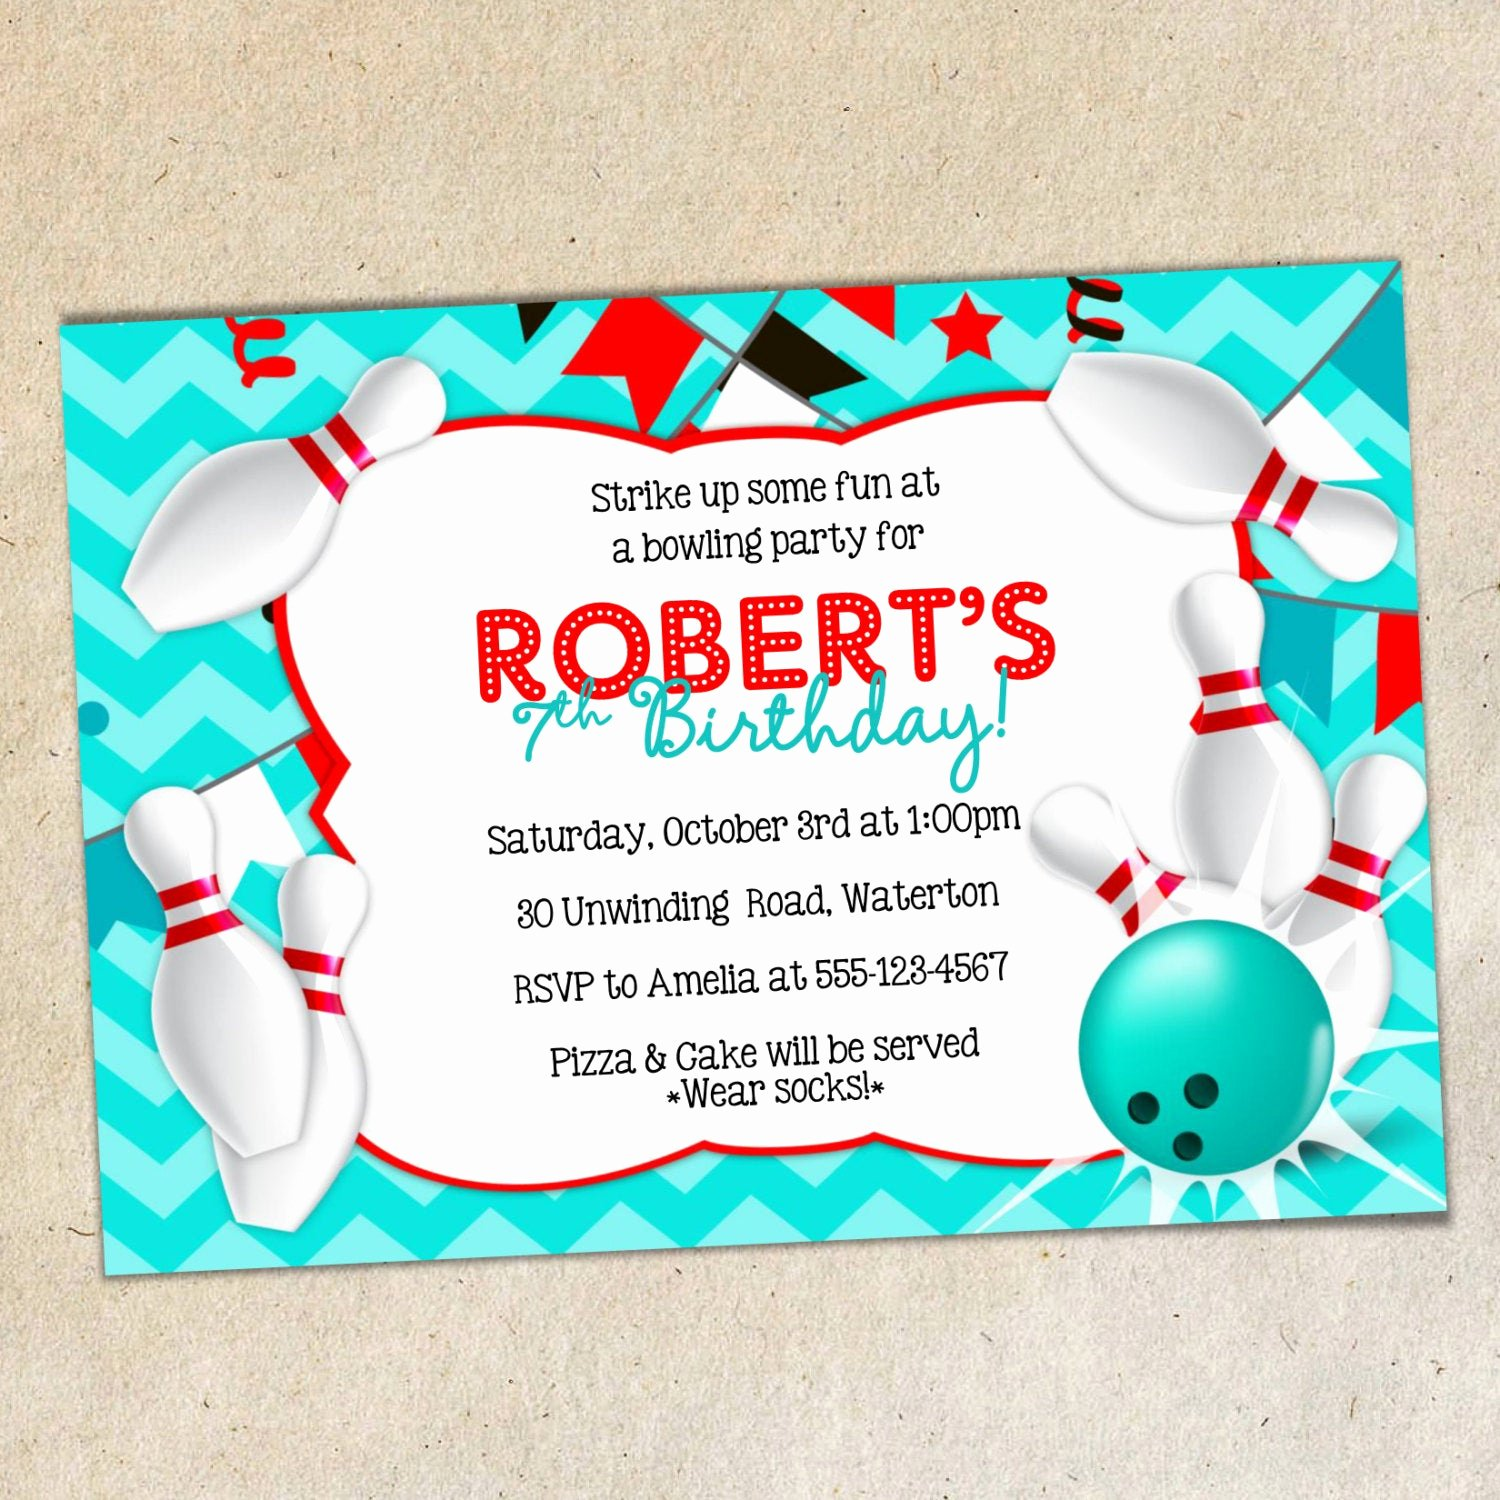 Bowling Party Invitations Templates Free Elegant Bowling Party Invitation Template Chevron Background Bowling